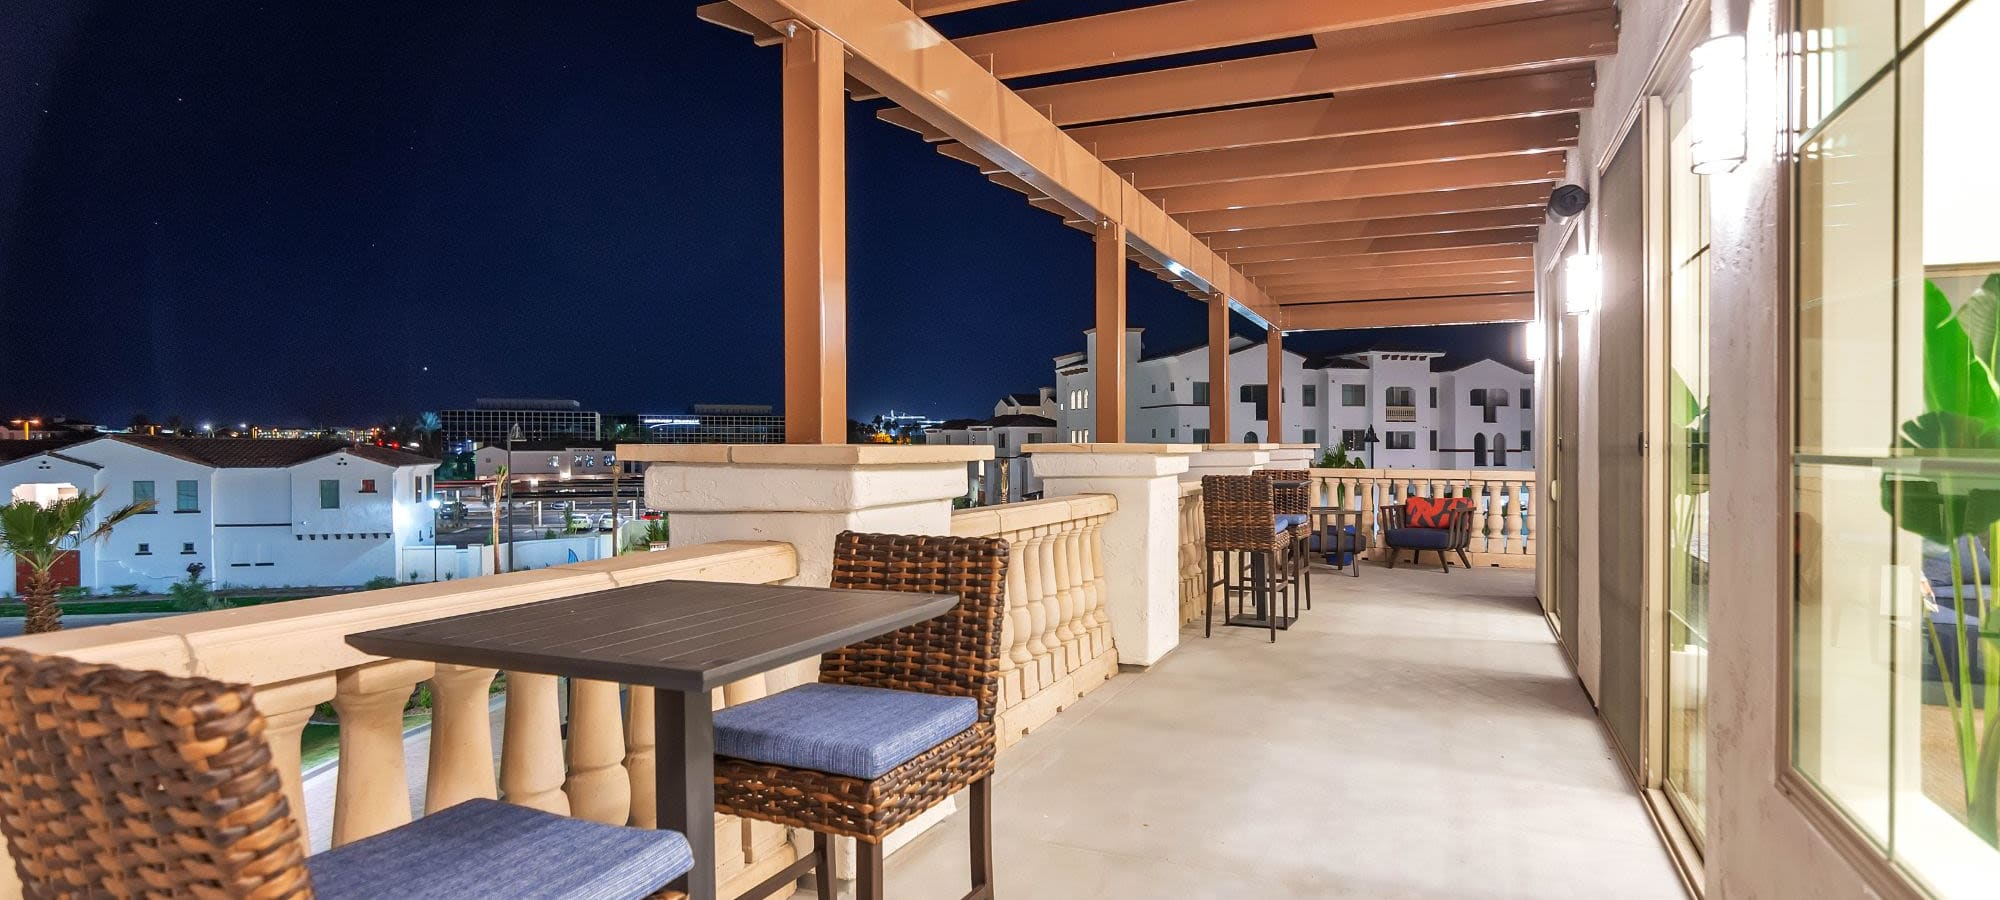 Community clubhouse and patio view at Arista at Ocotillo in Chandler, Arizona